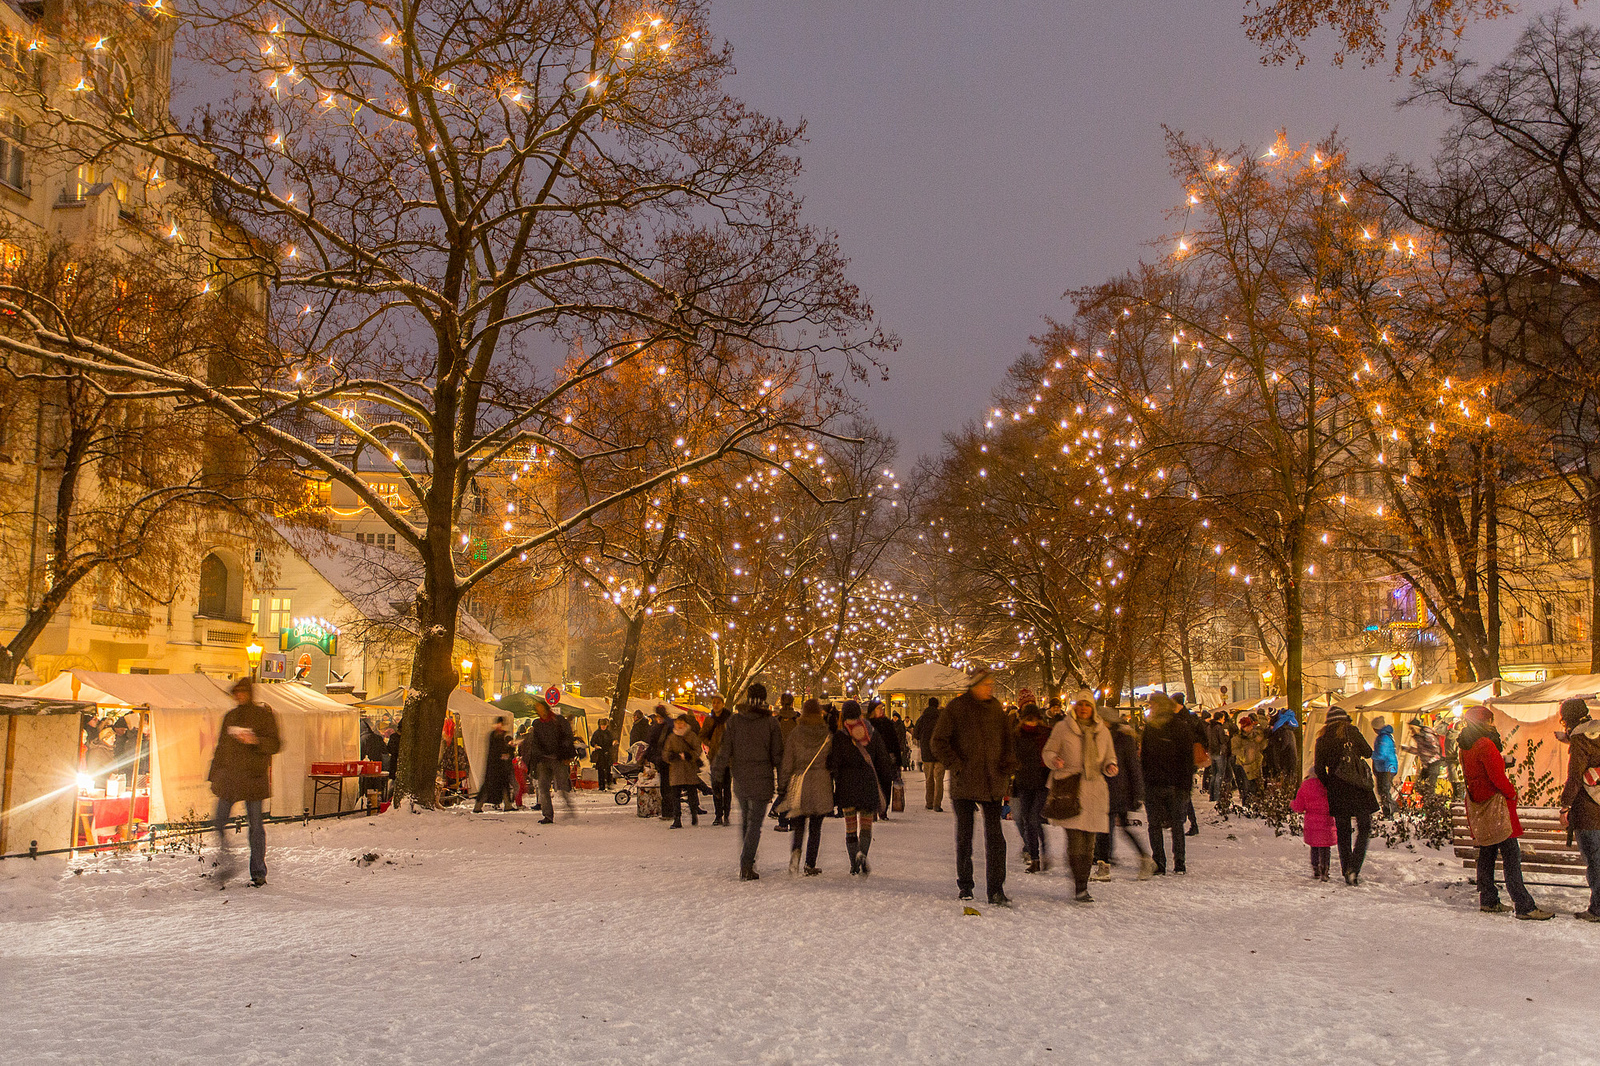 Christmas Market in Berlin (Richardplatz), Germany Credit VisitBerlin/Wolfgang Scholvien